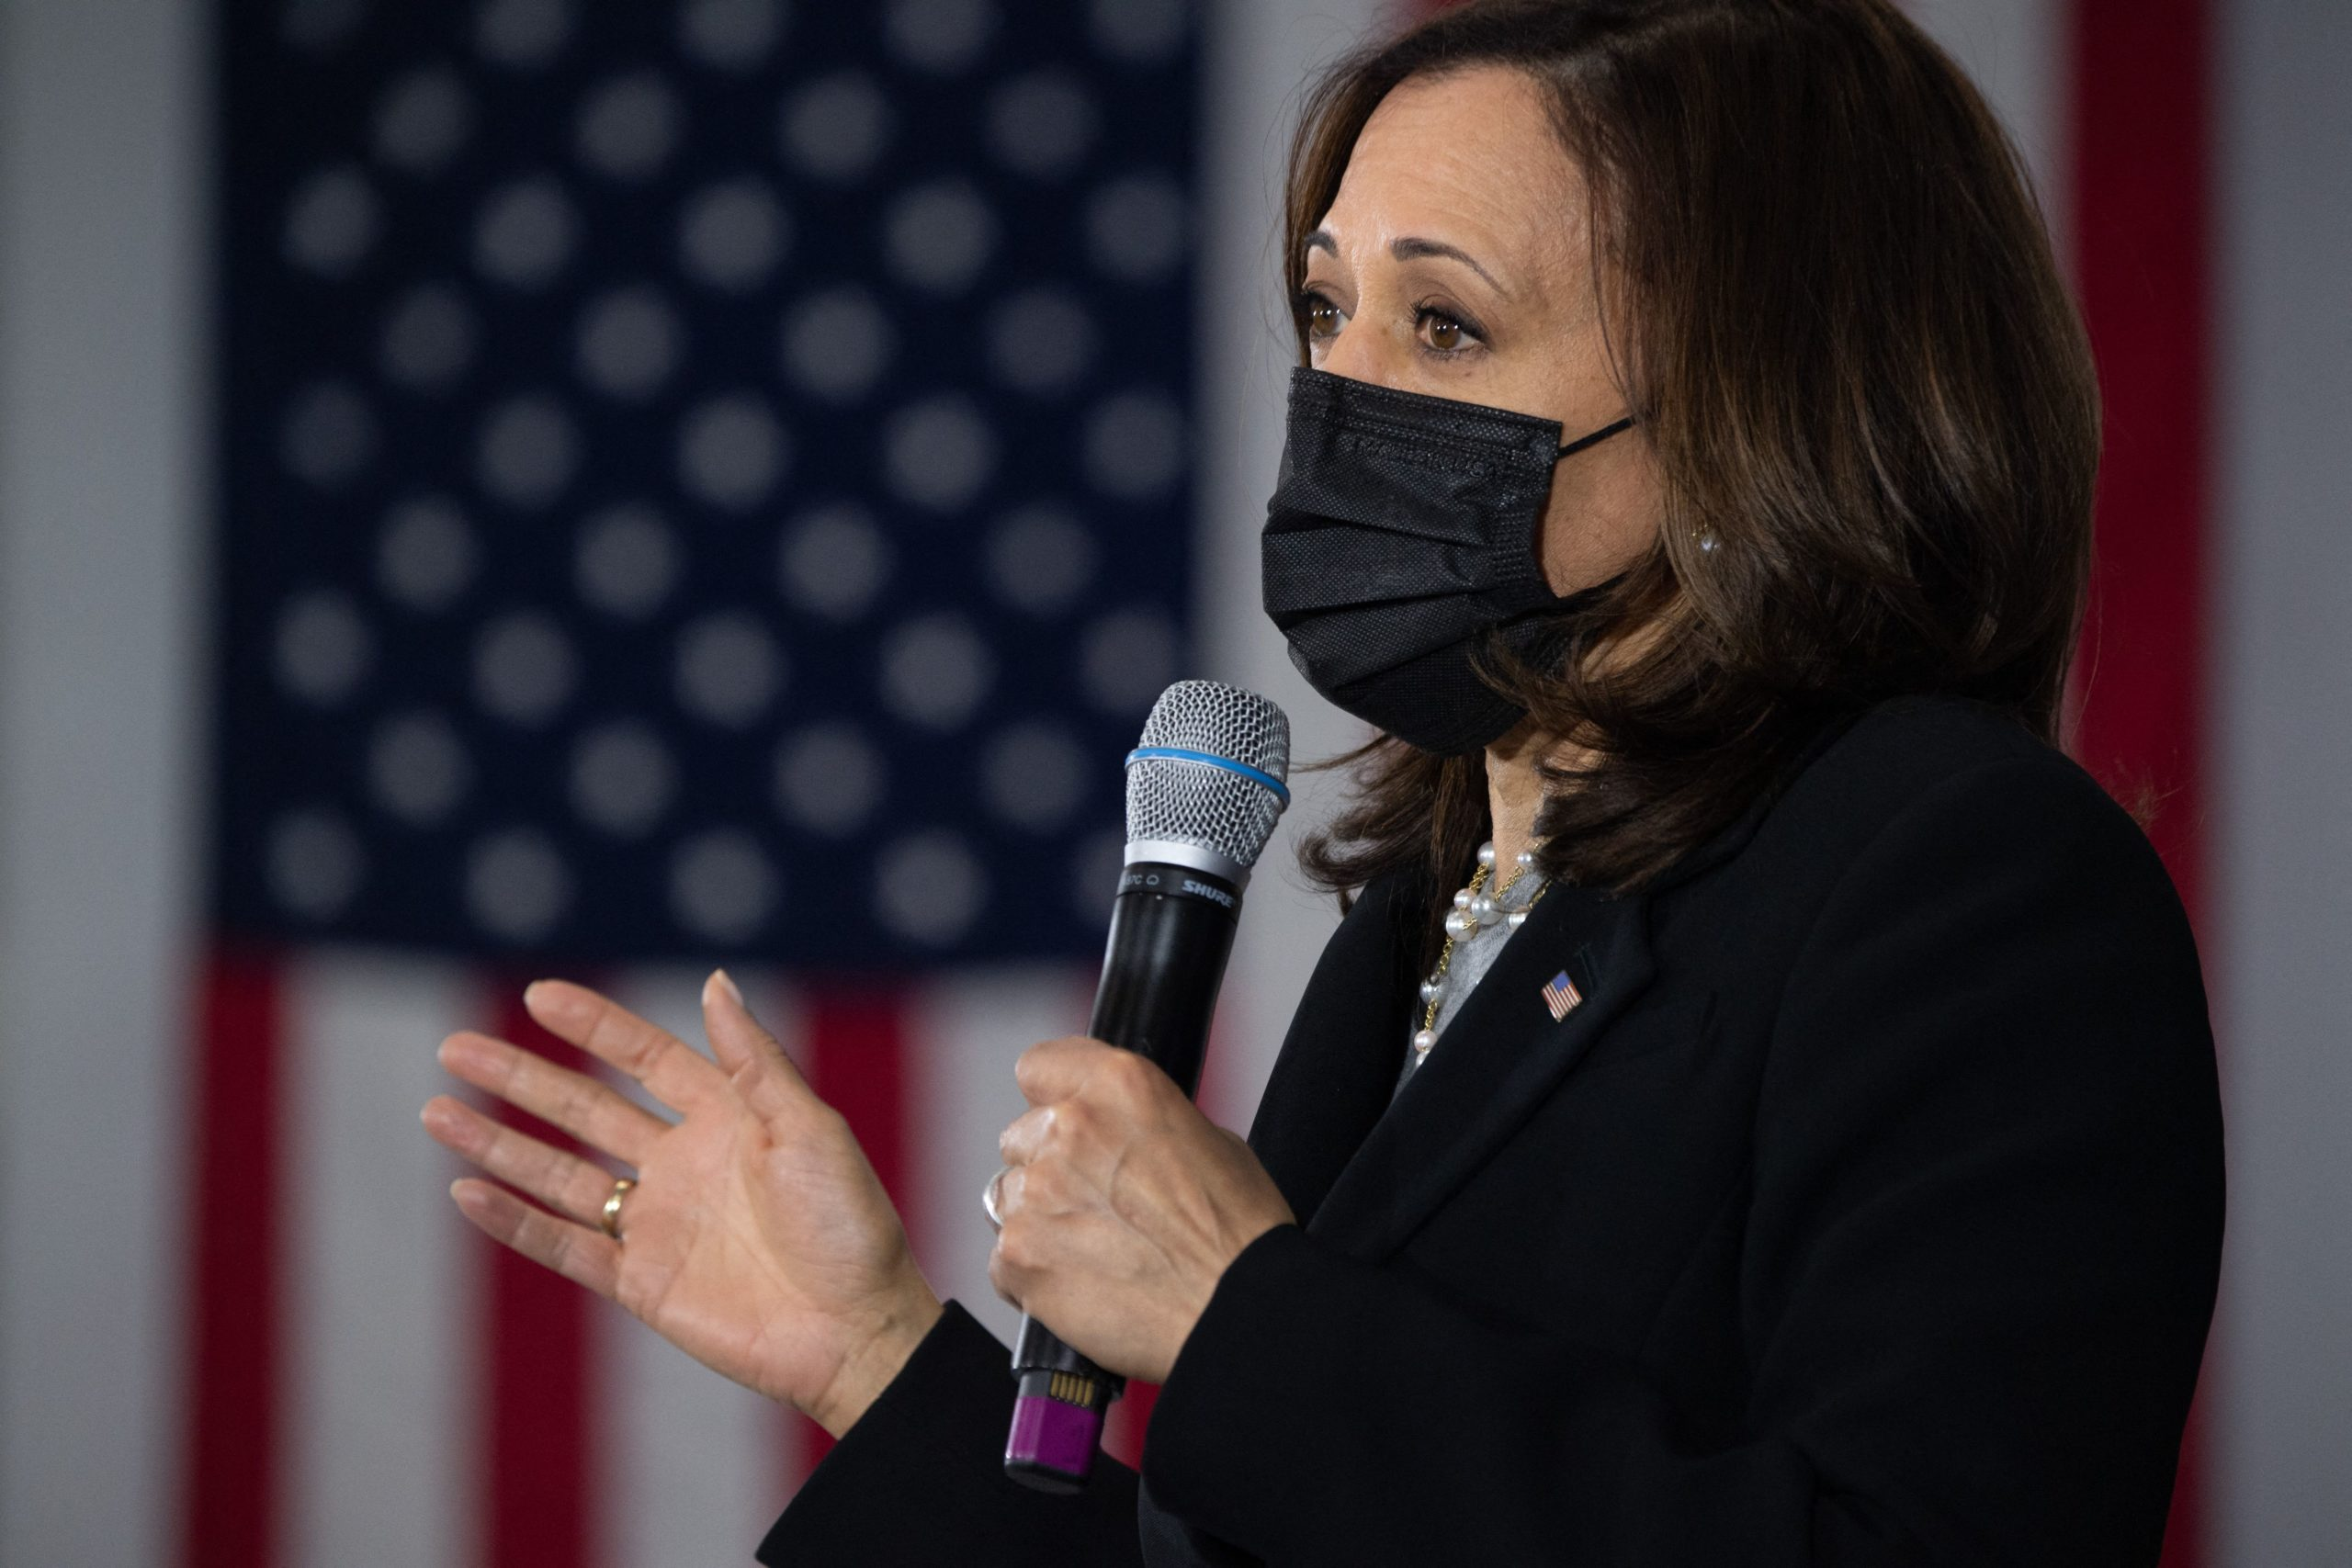 US Vice President Kamala Harris speaks after touring the IBEW Training Center in Concord, New Hampshire, April 23, 2021 as she travels to the state to promote the administrations economic plans. (Photo by SAUL LOEB/AFP via Getty Images)